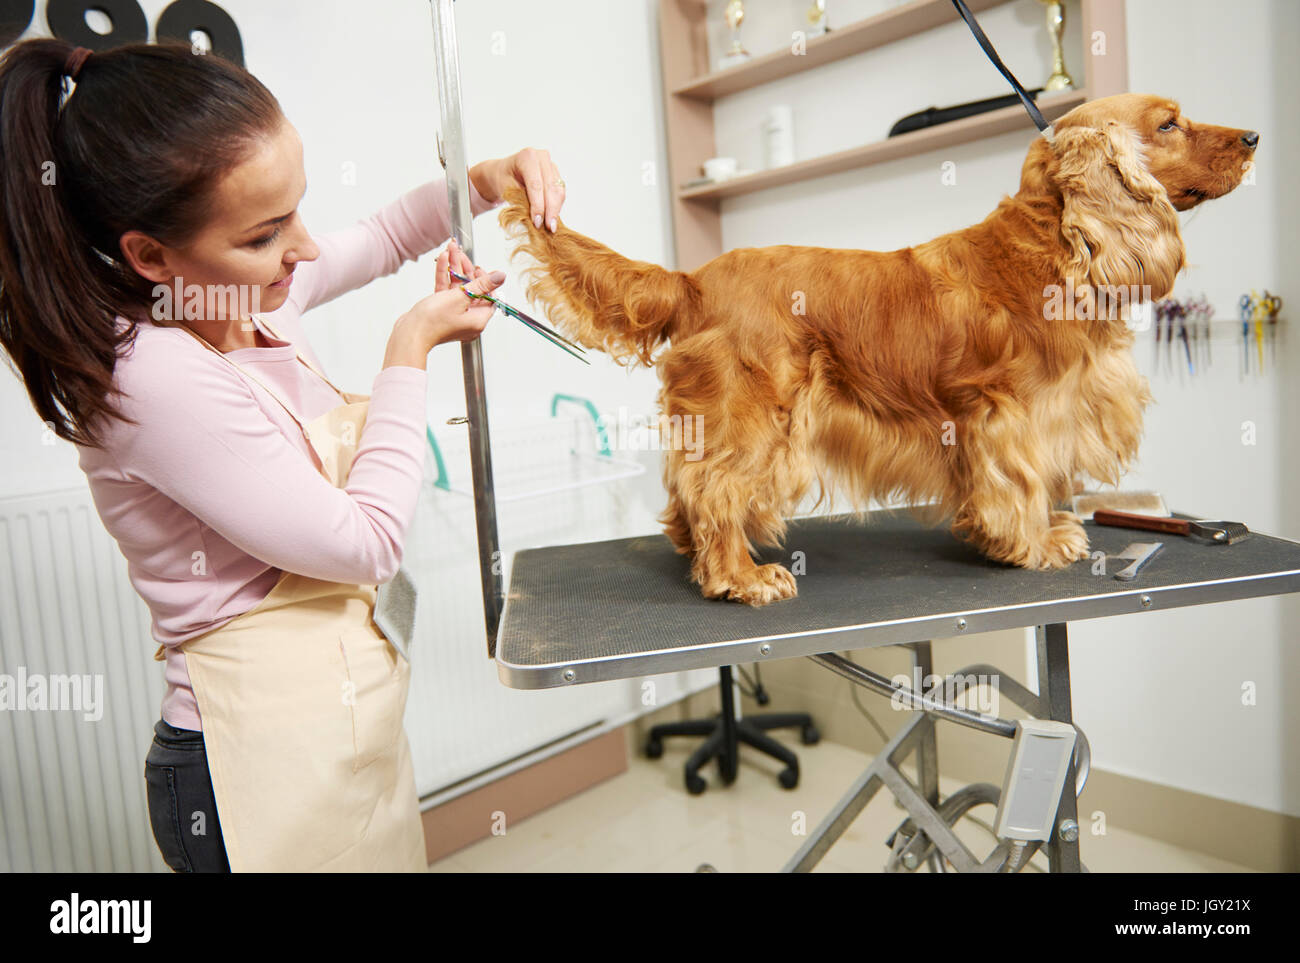 Female groomer trimming cocker spaniel's tail at dog grooming salon - Stock Image